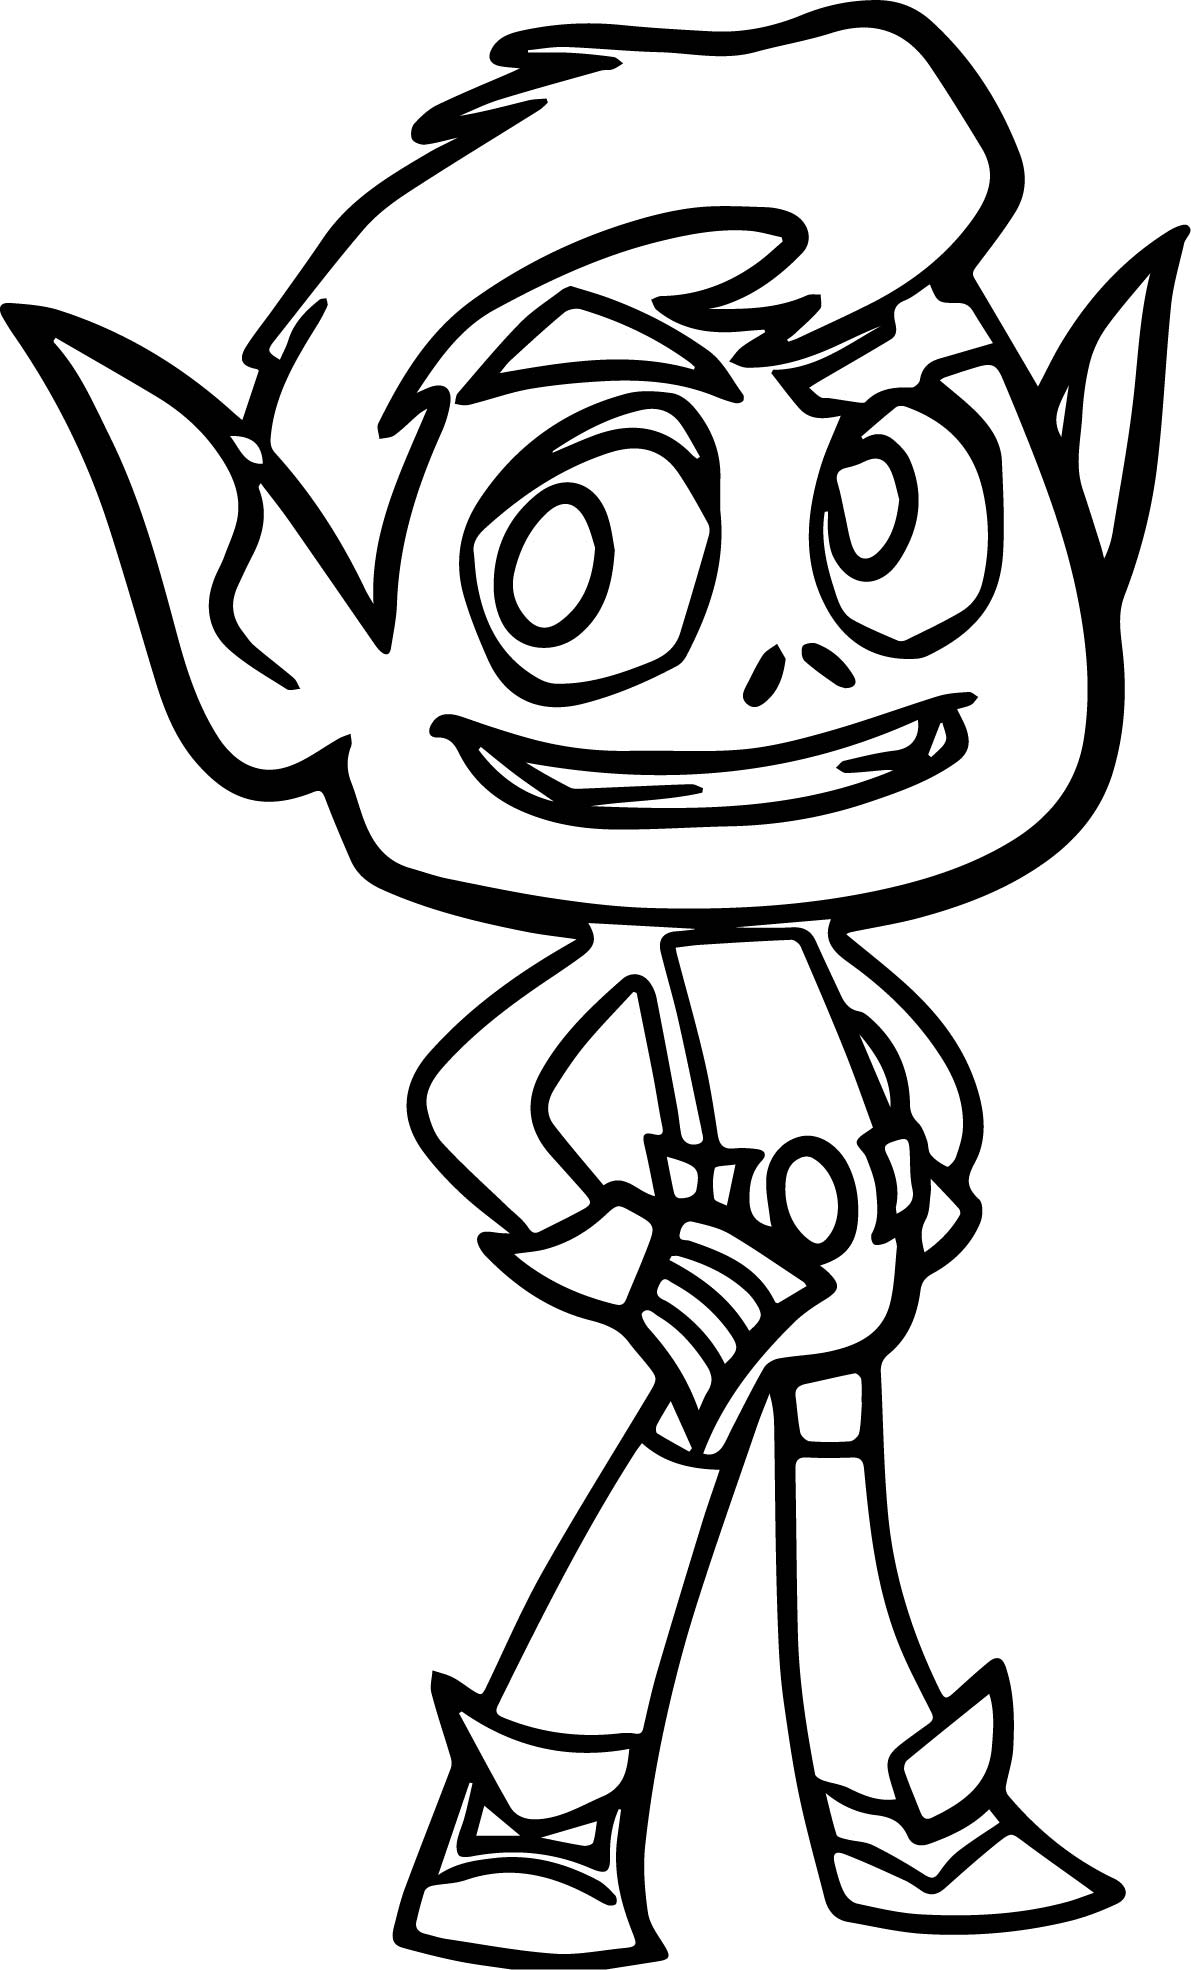 Teen titans go beast boy good coloring page for Teen titans coloring pages